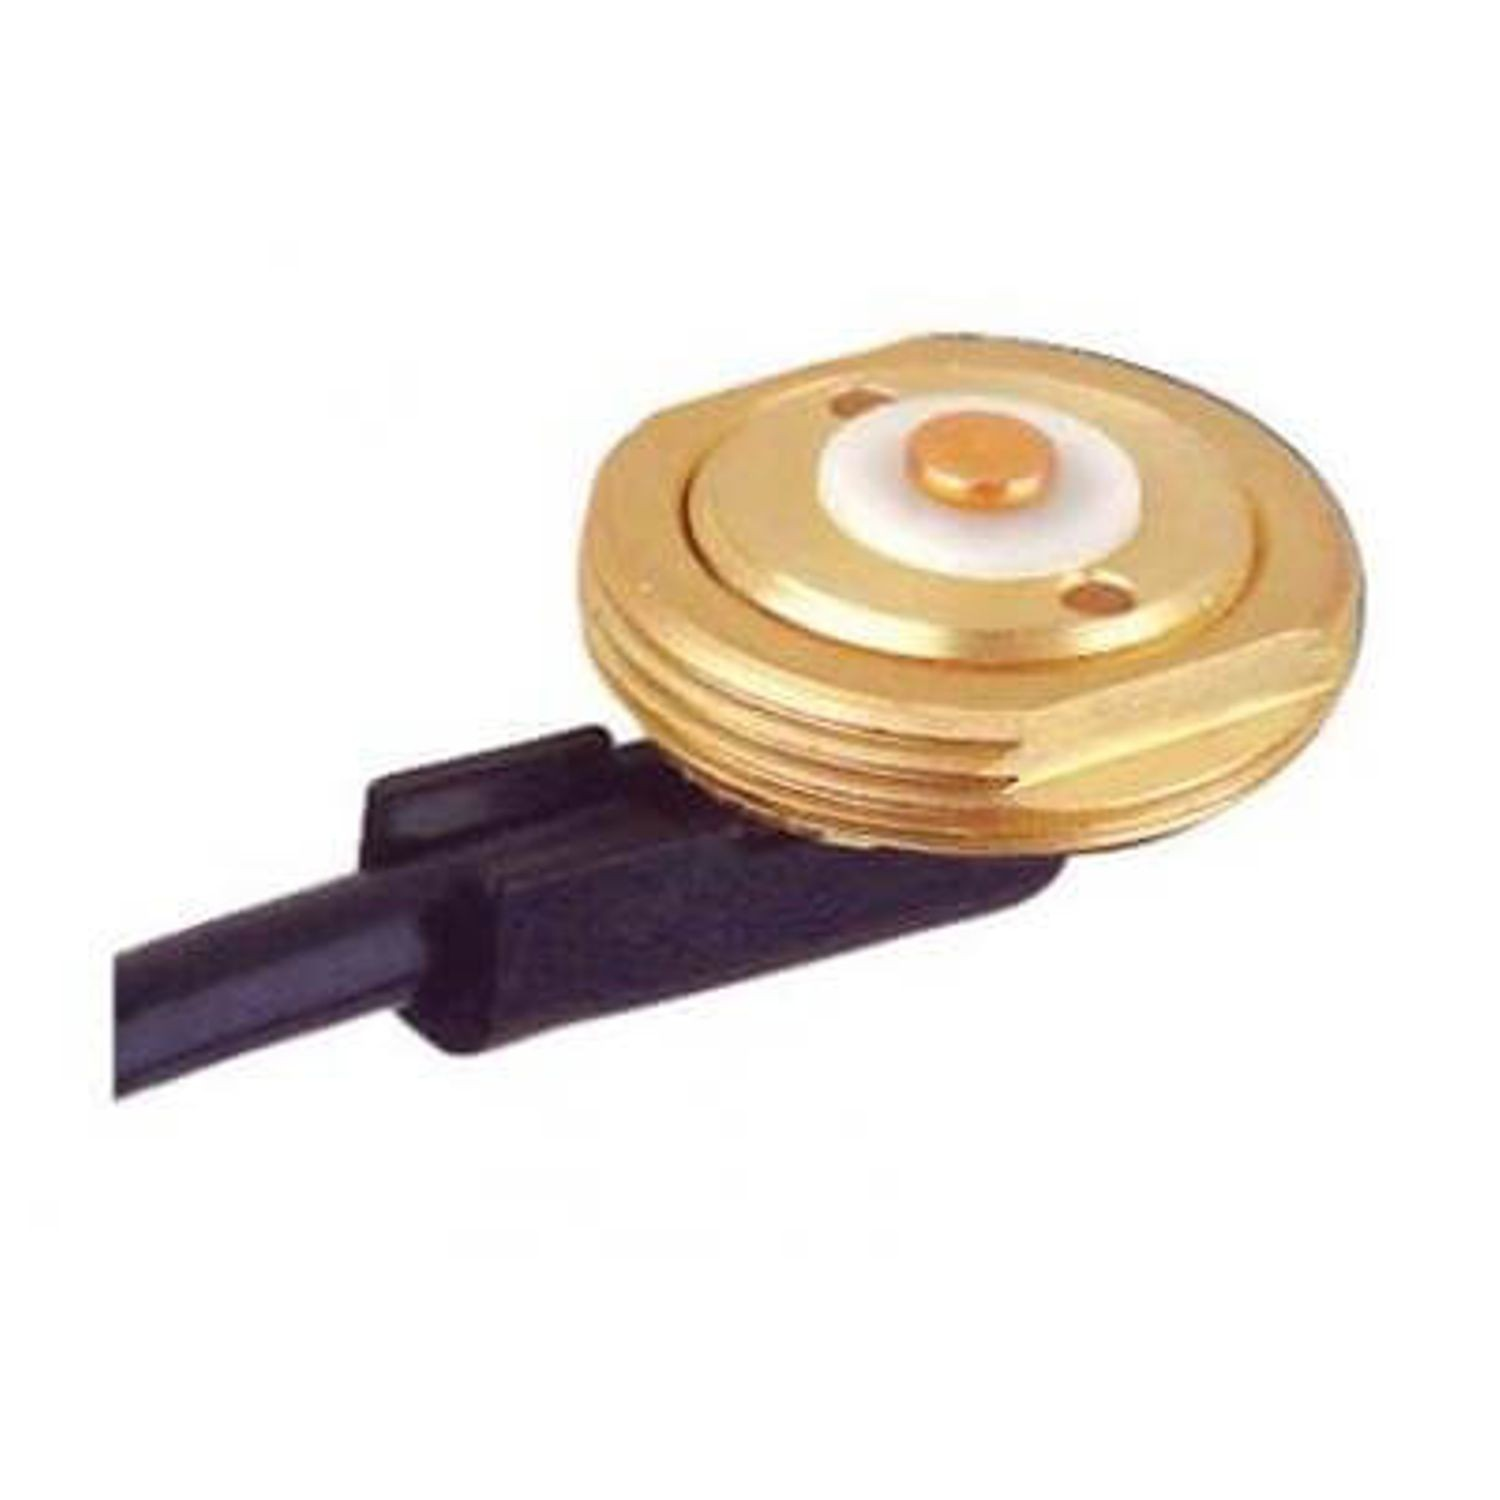 3/4 IN. HOLE BRASS MOUNT FOR USE WITH RG58 SIZE CABLE